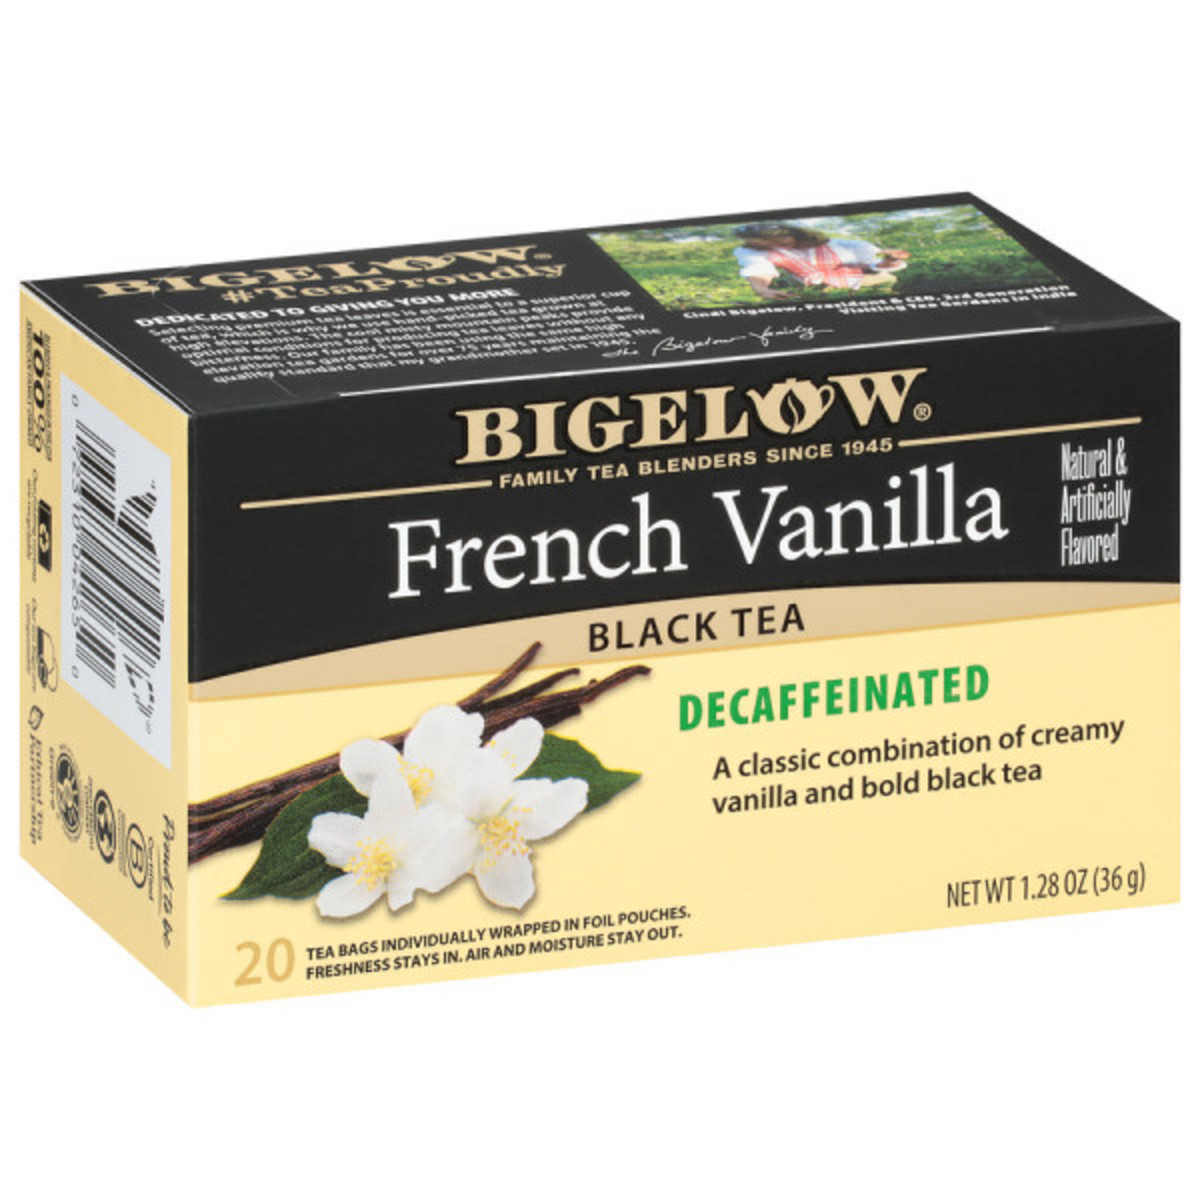 French Vanilla Decaf Tea - Case of 6 boxes- total of 120 teabags